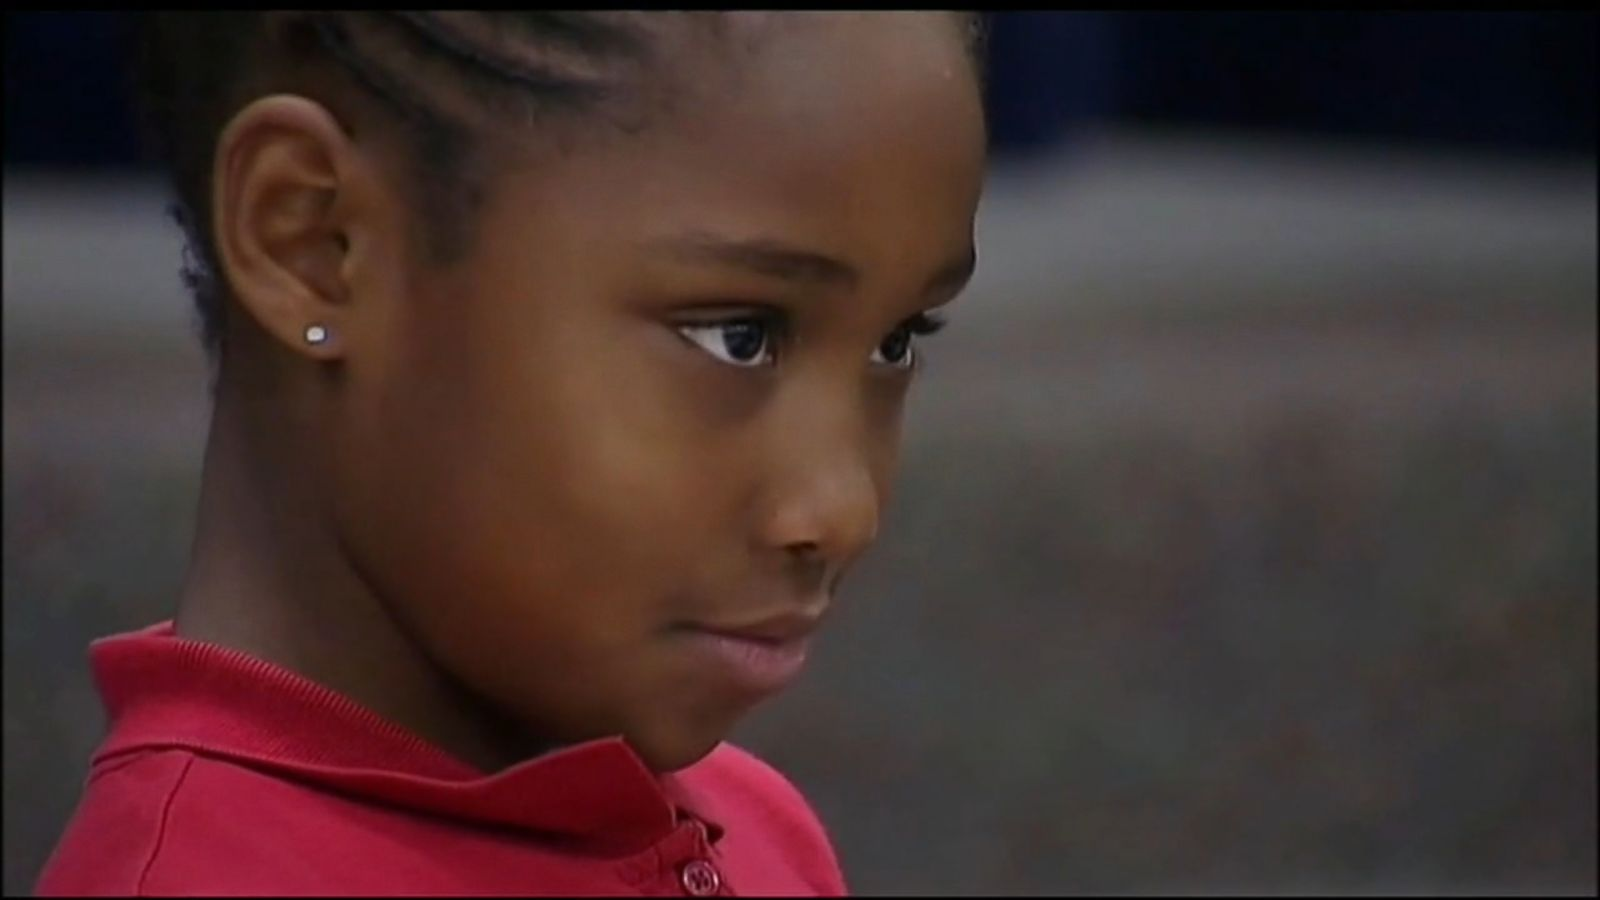 A little girl passionate about her education now has at least one college option.